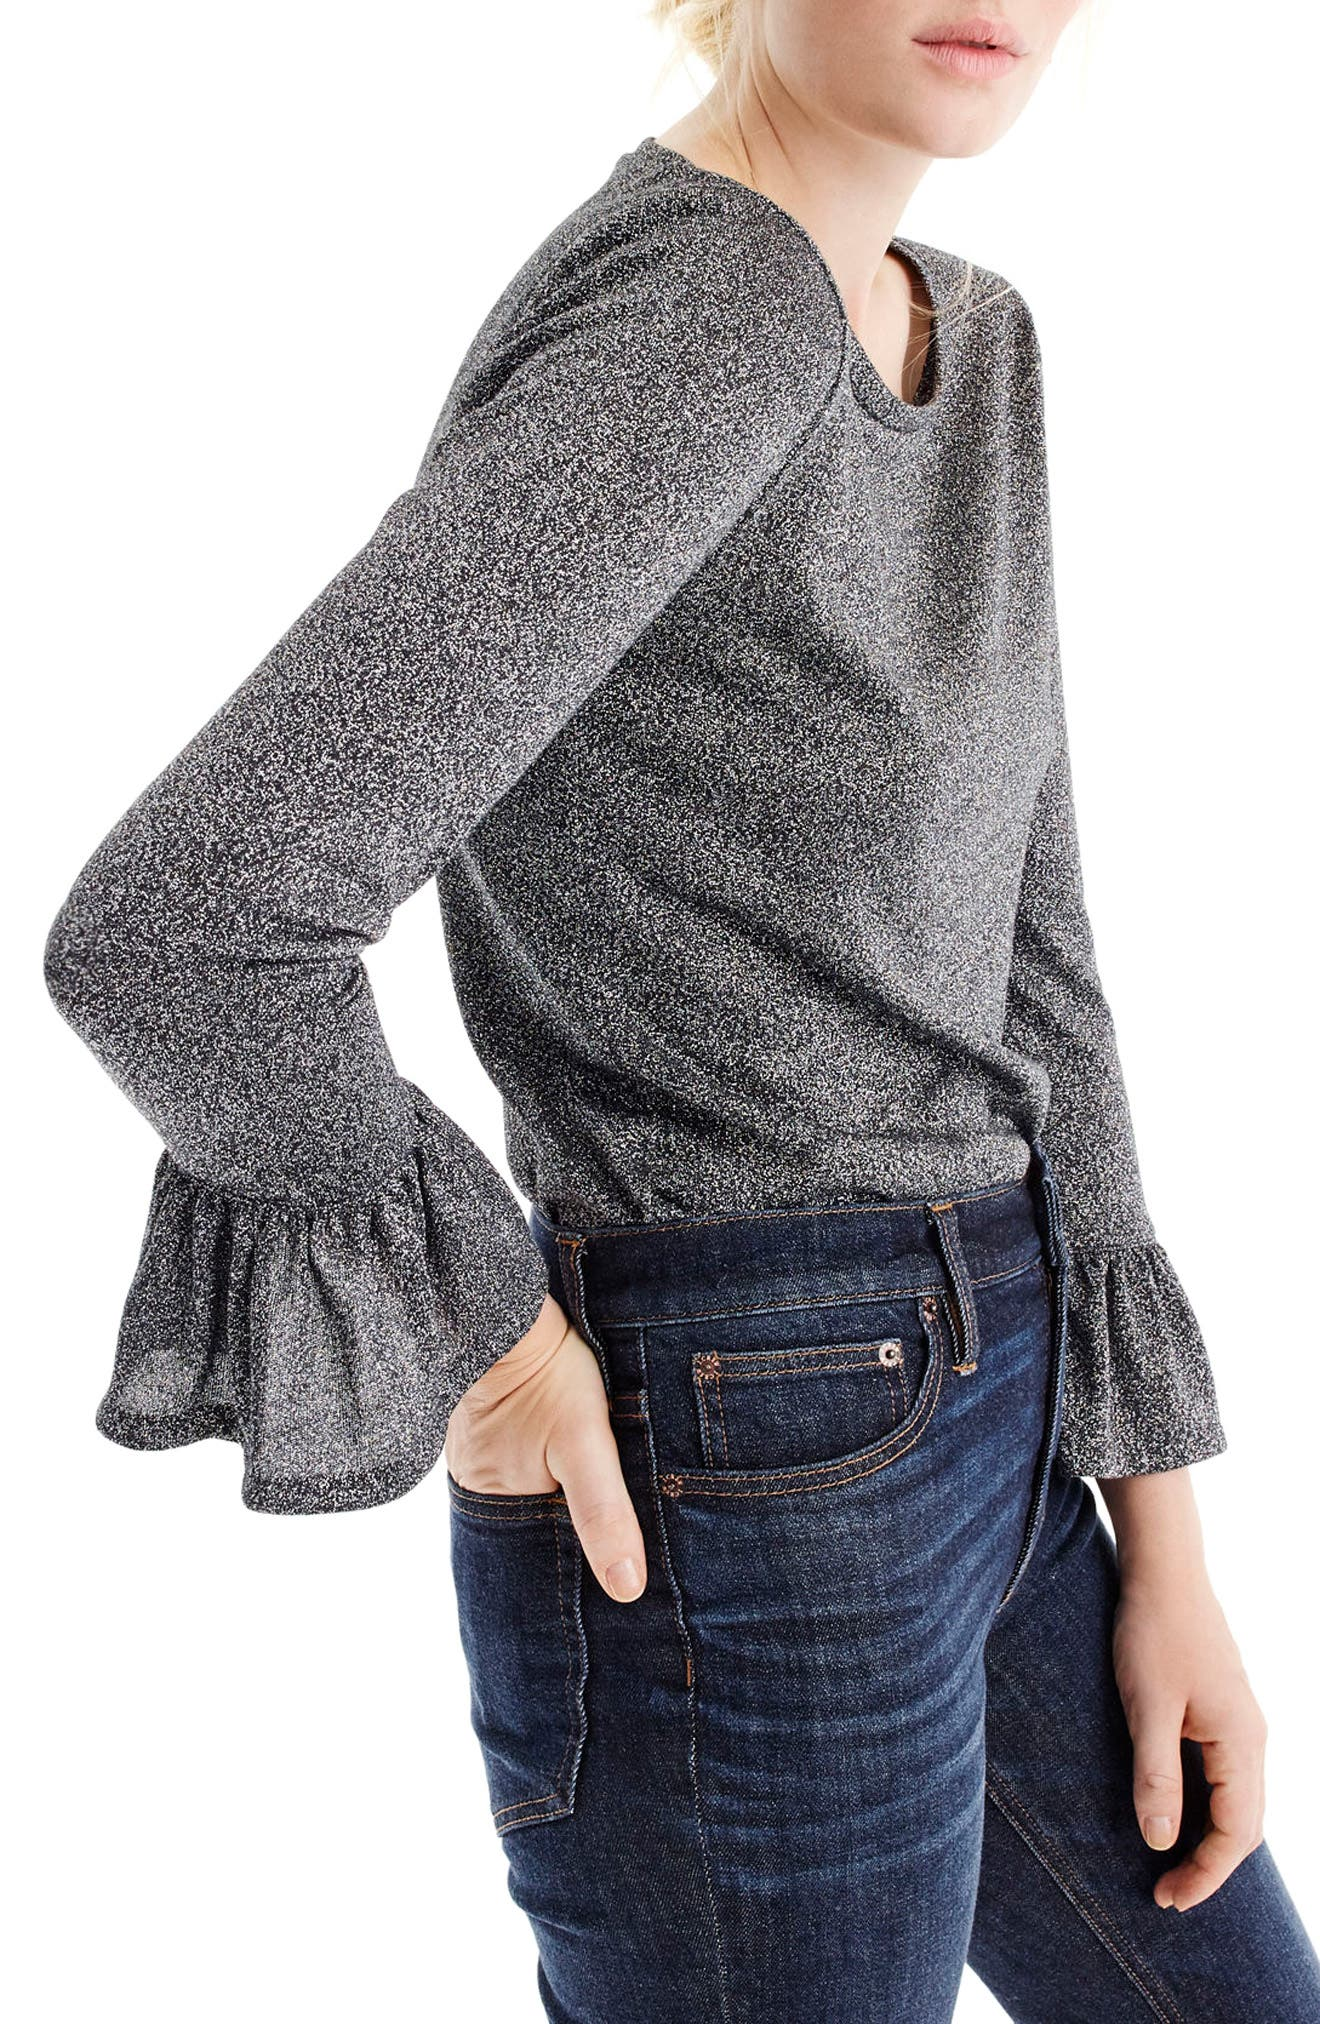 Main Image - J.Crew Bell Sleeve Sparkle Top